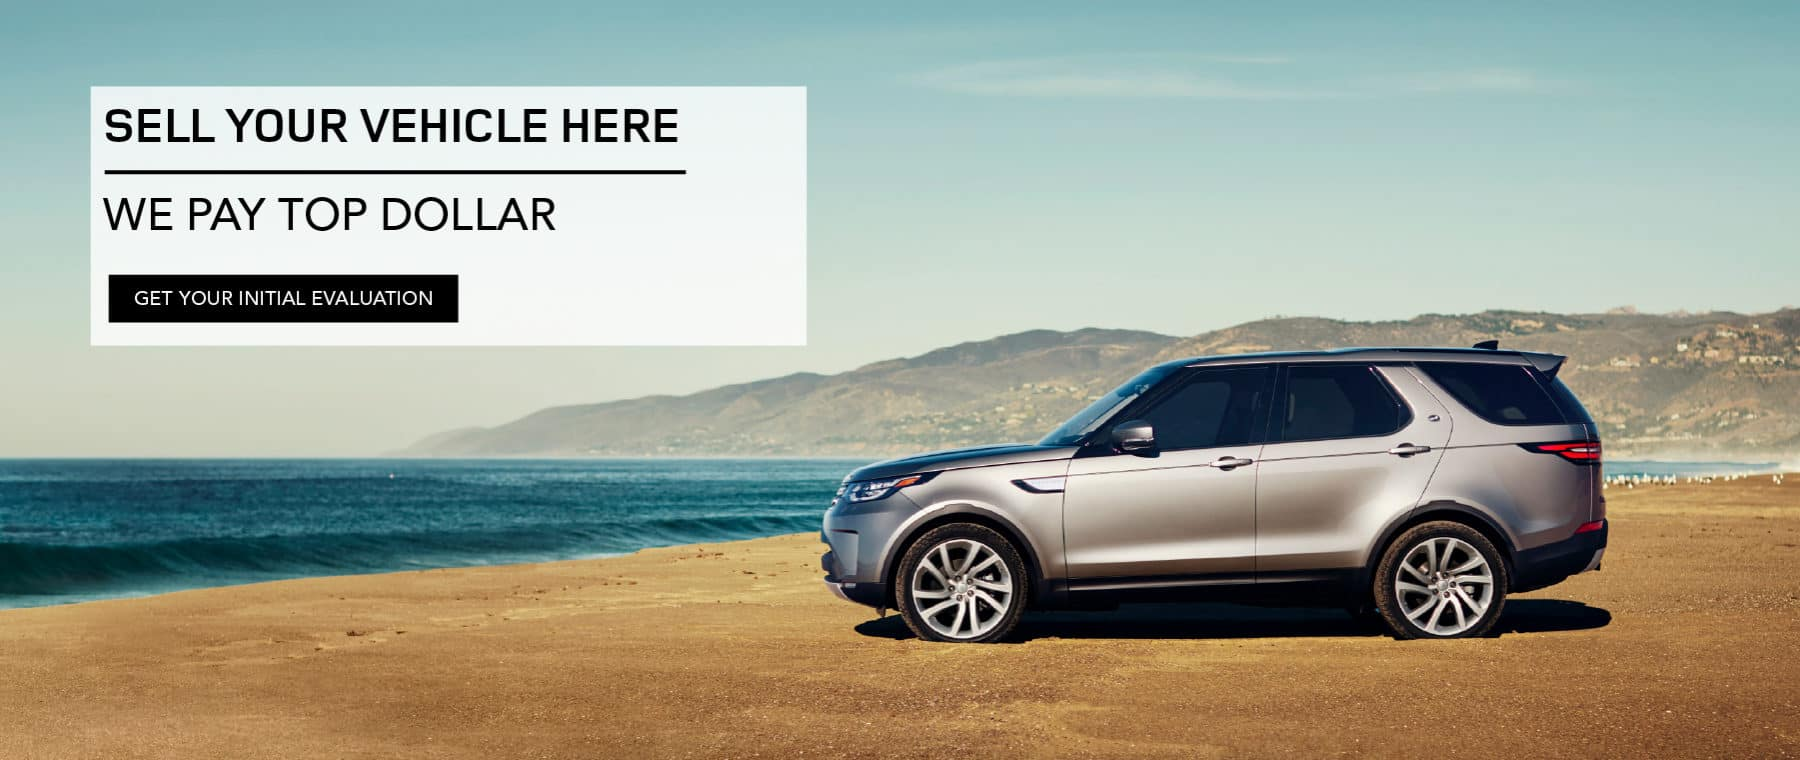 SELL YOUR VEHICLE HERE. WE PAY TOP DOLLAR. GET YOUR INITIAL EVALUATION. SILVER DISCOVERY PARKED ON BEACH.